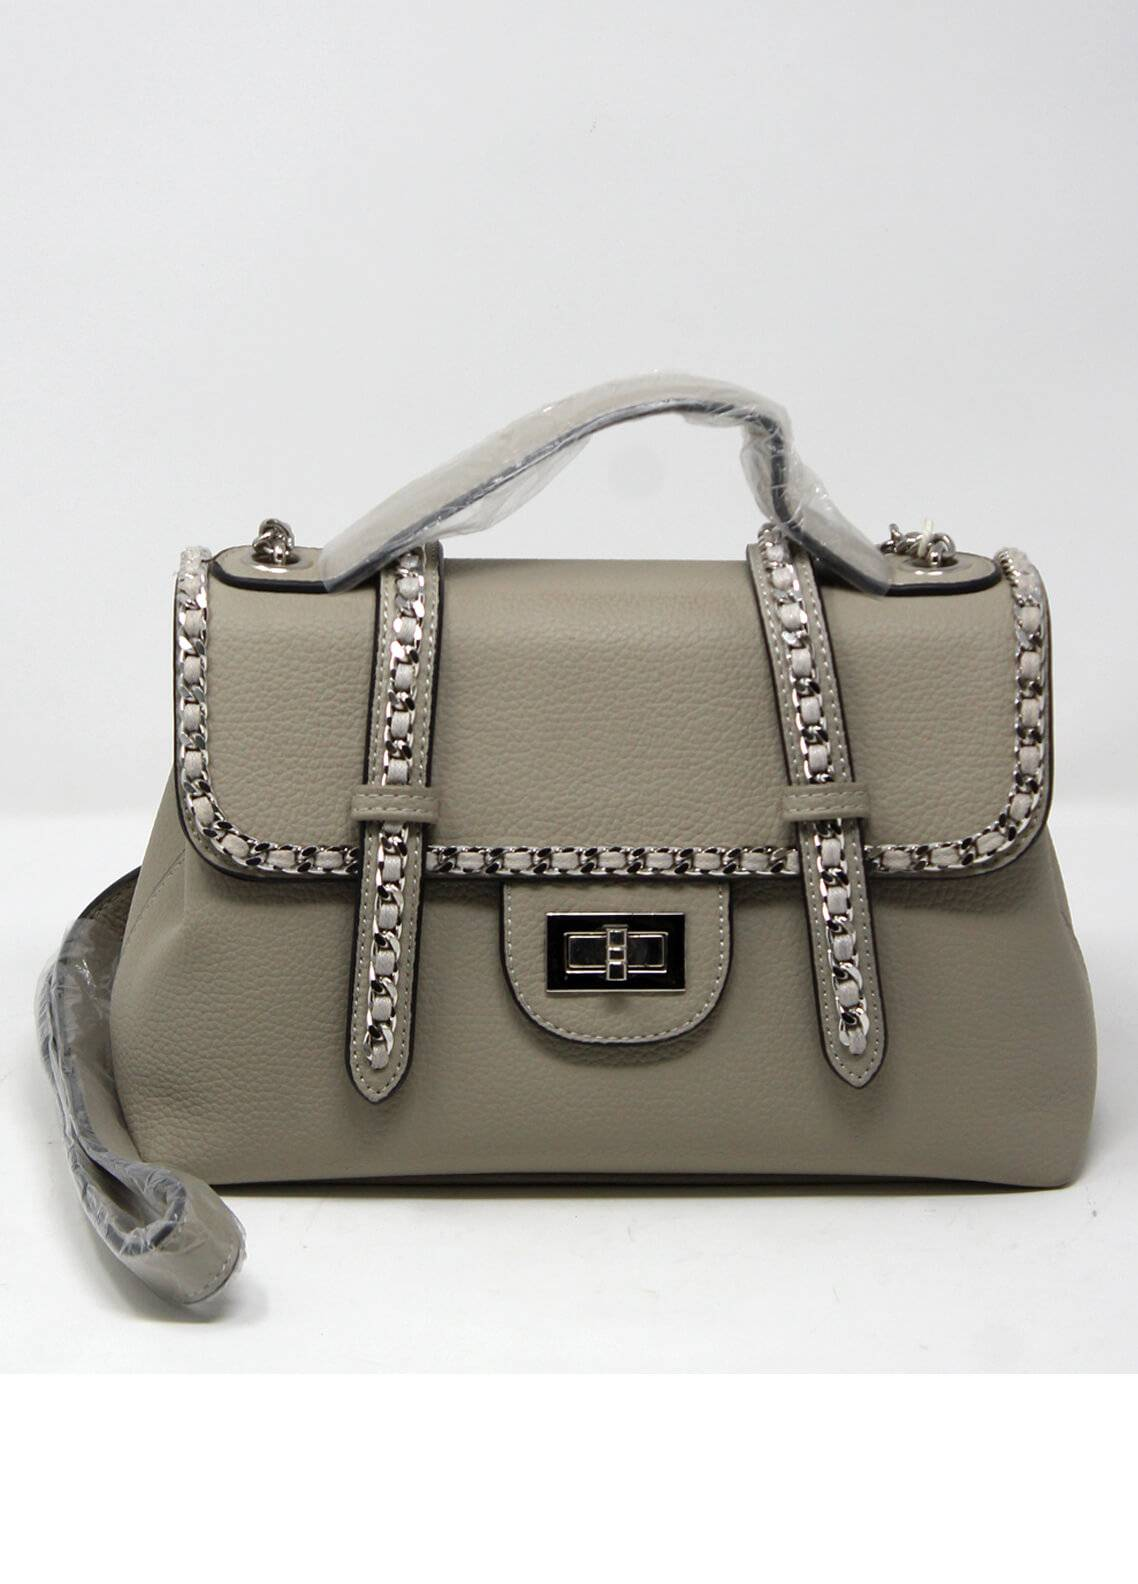 Susen PU Leather Satchels Bag for Women - Grey with Plain Texture